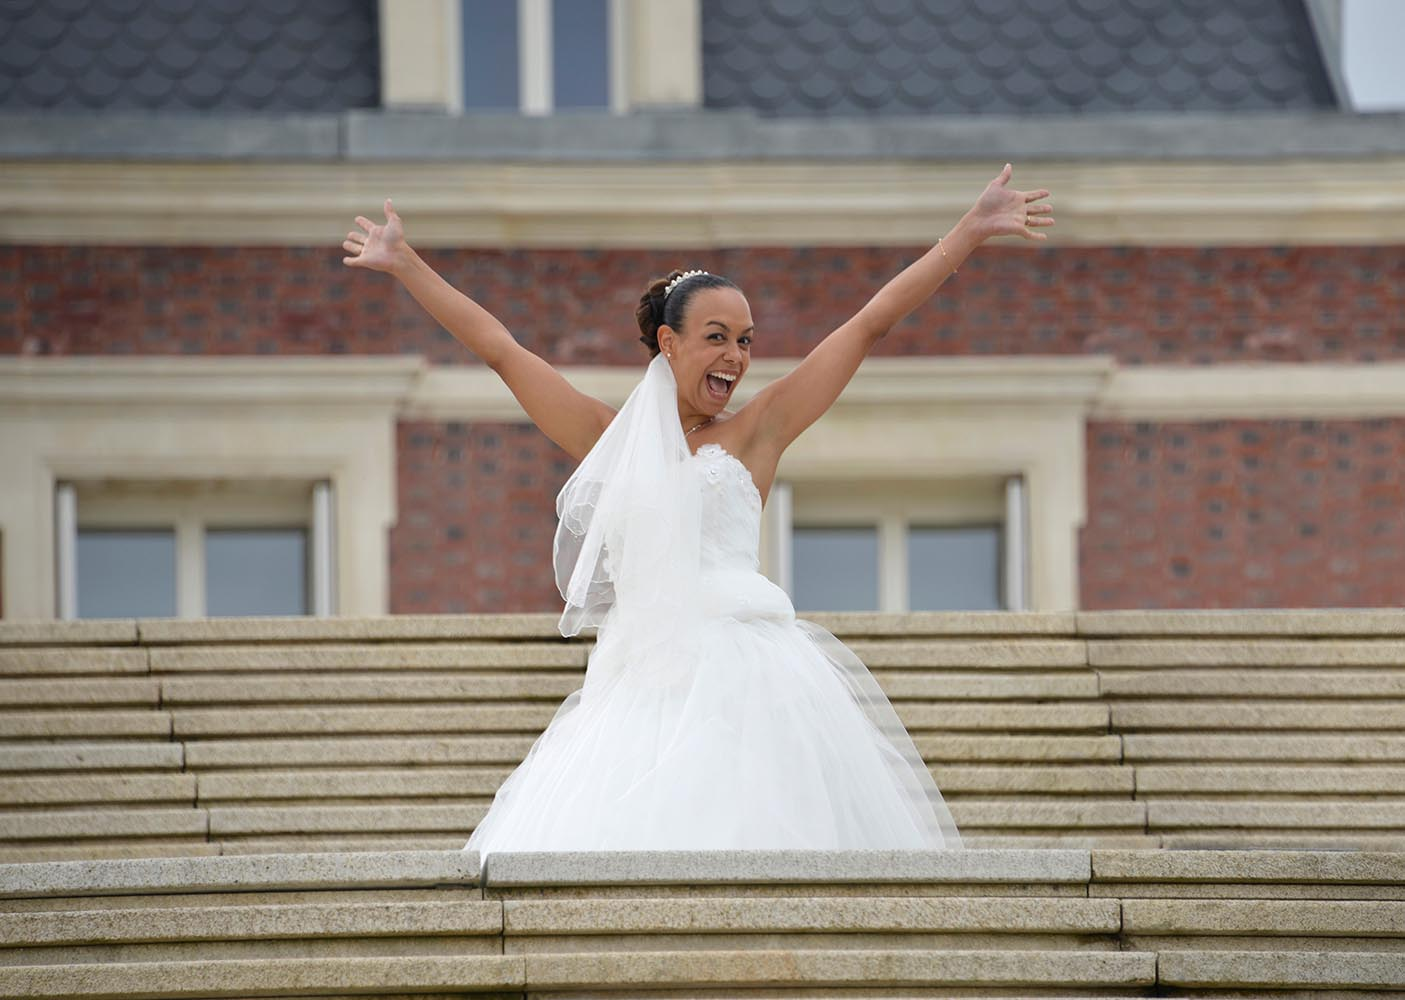 Happy Bride in wedding dress showing her happiness with hands up